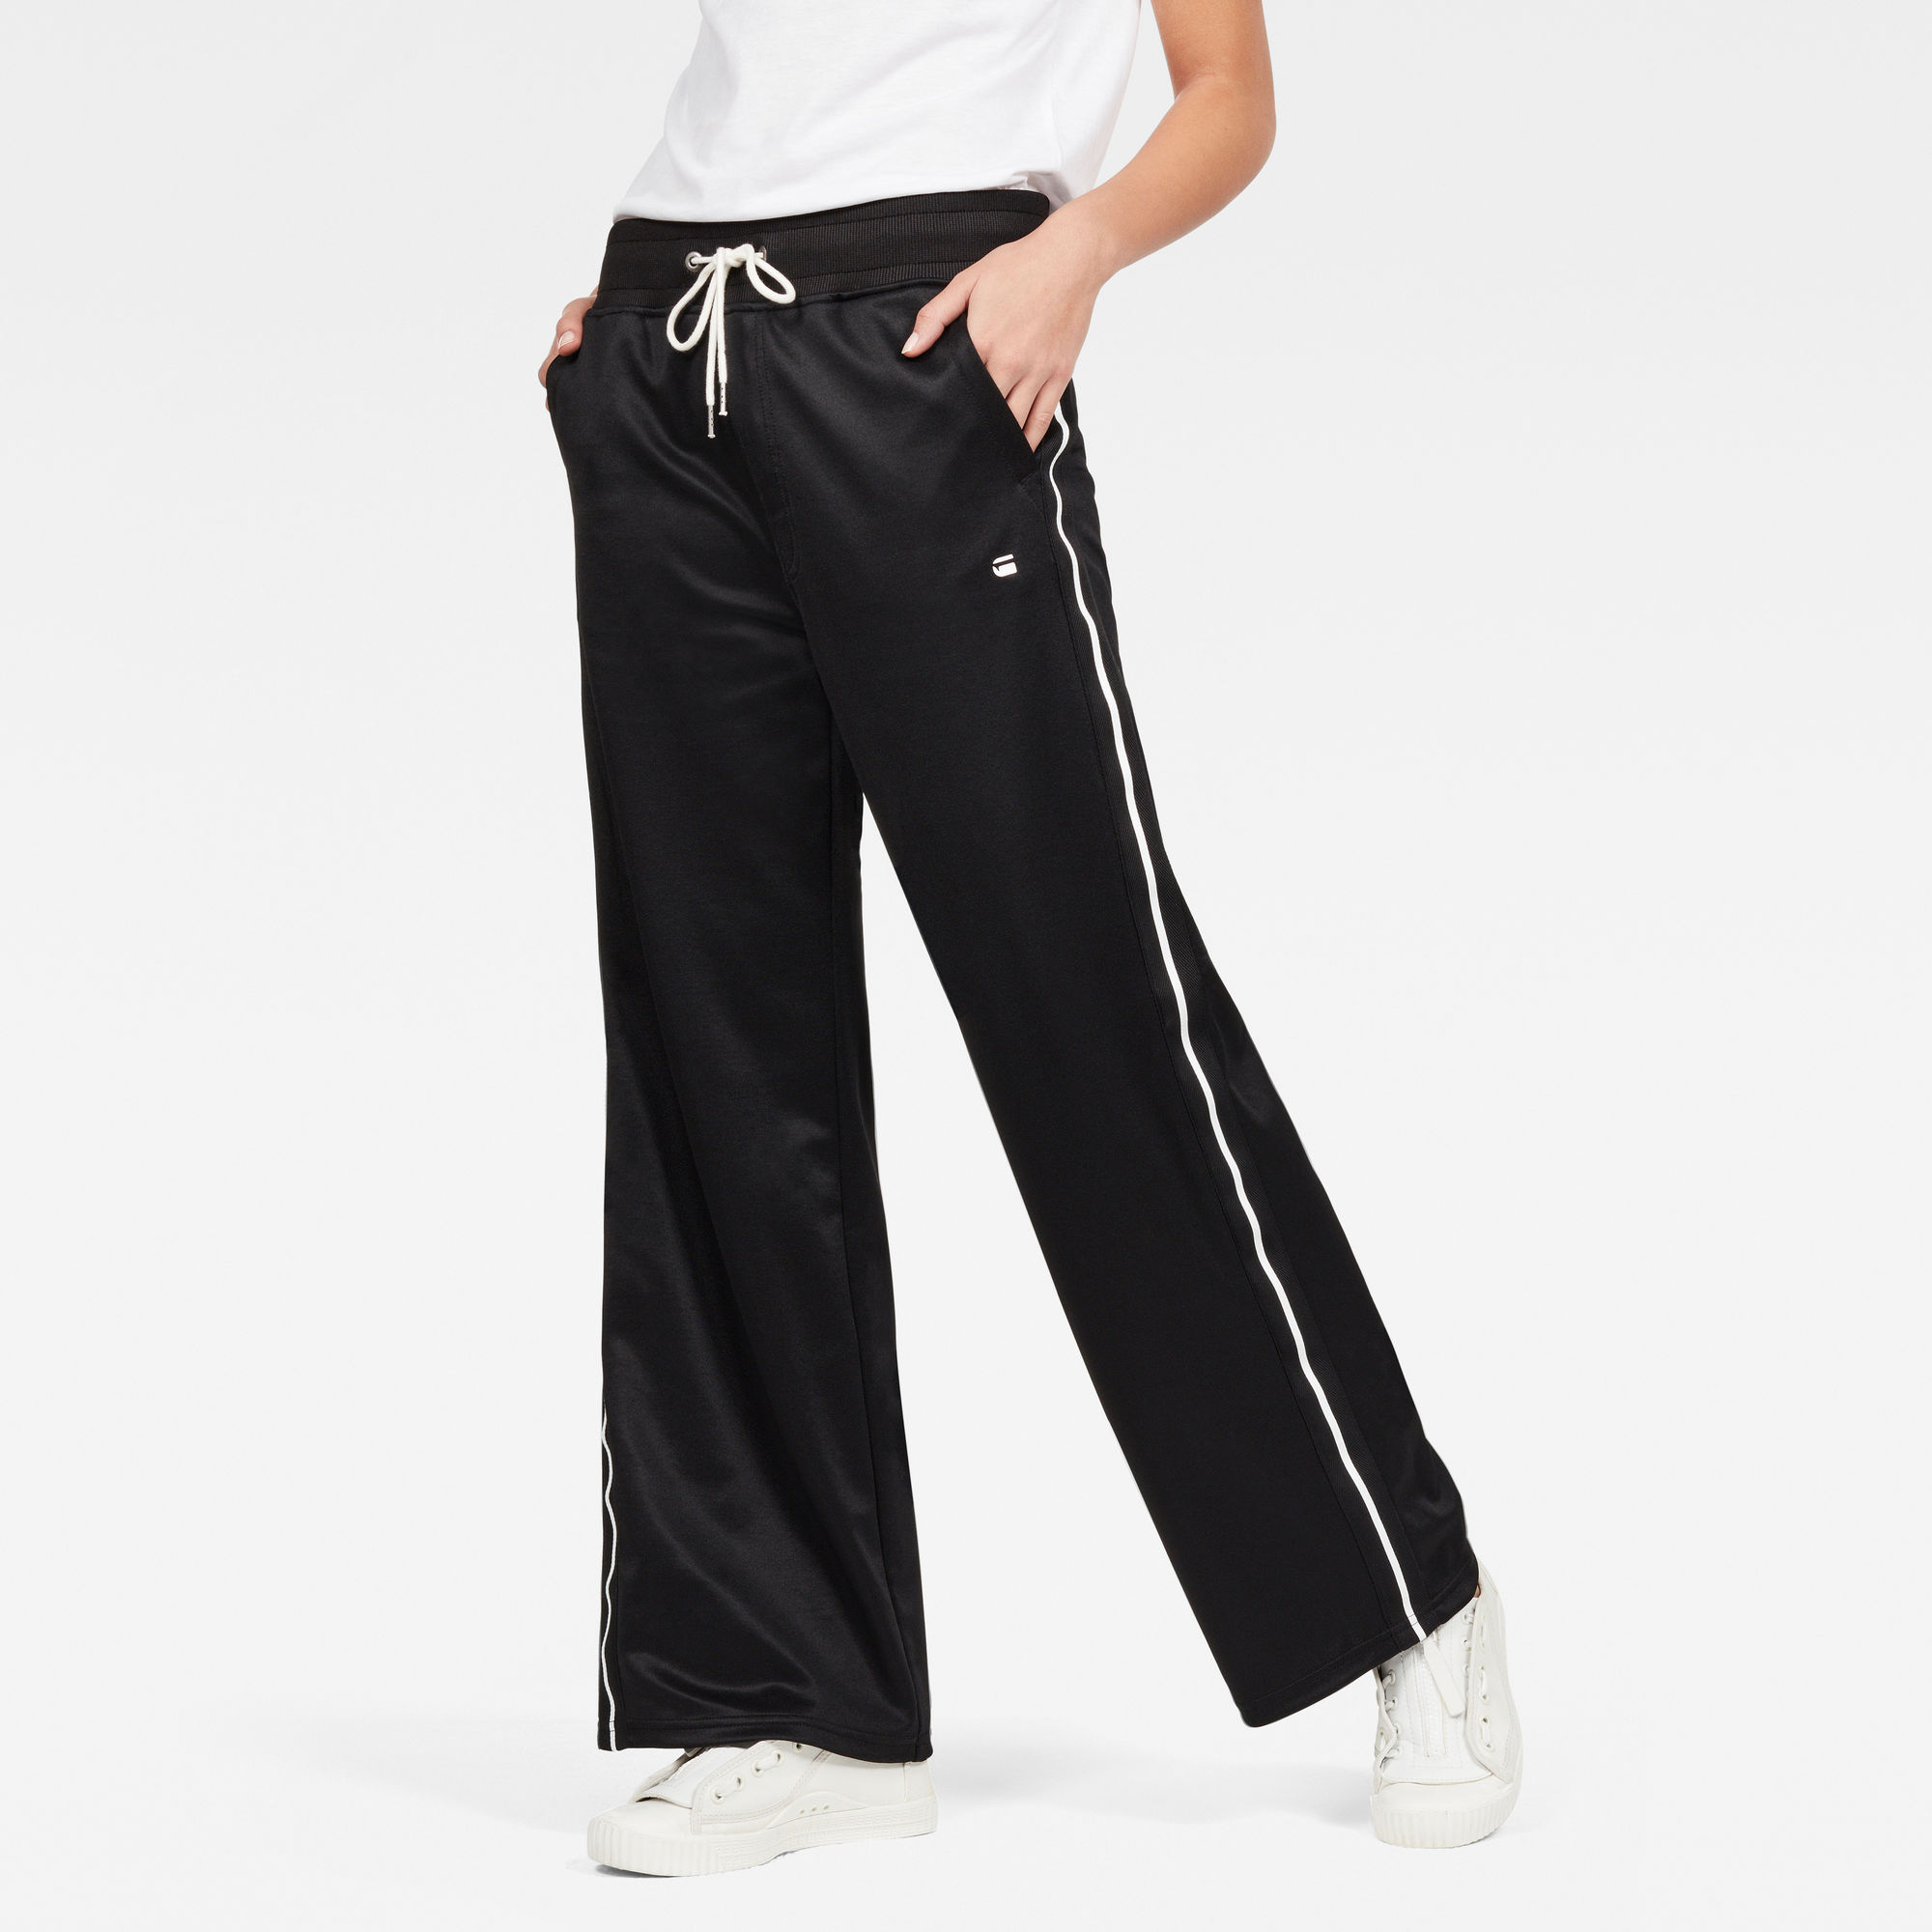 Image of G Star Raw Rie Sport Sweat Pant